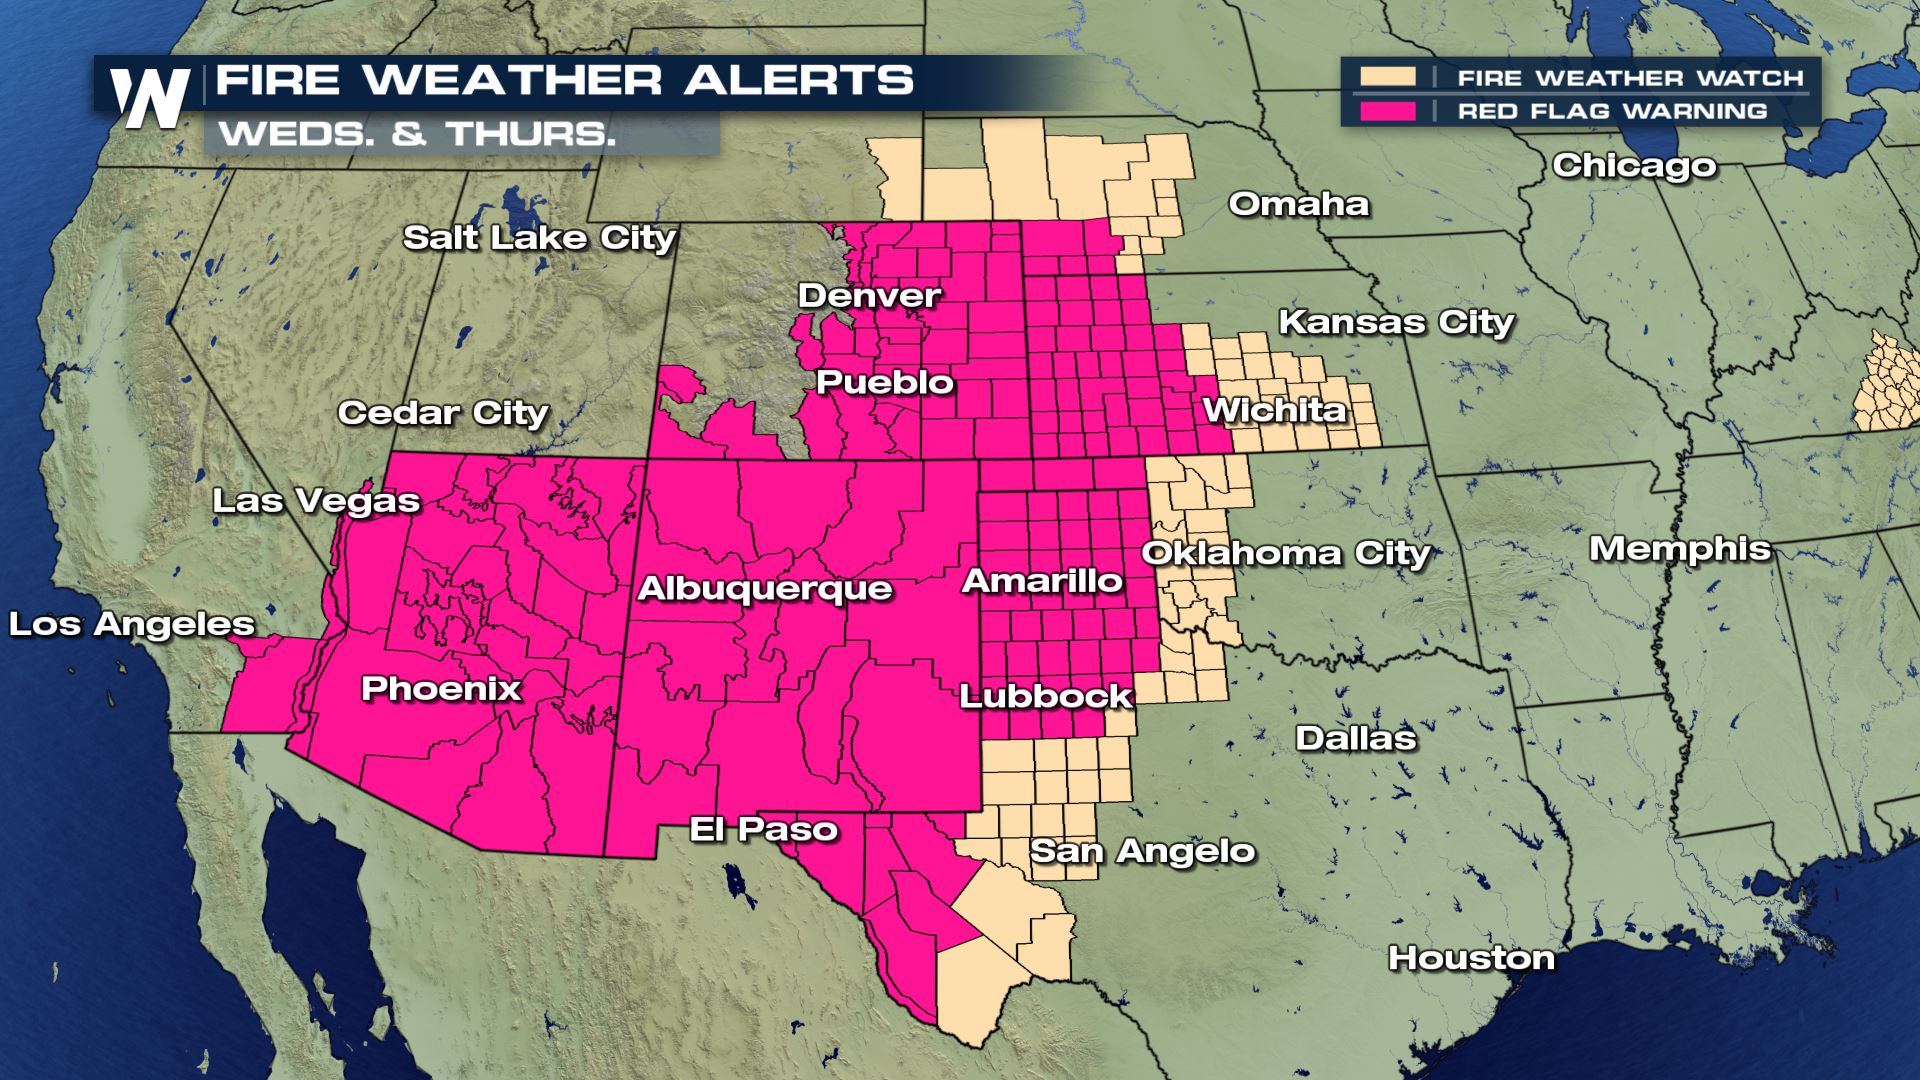 red flag warning map